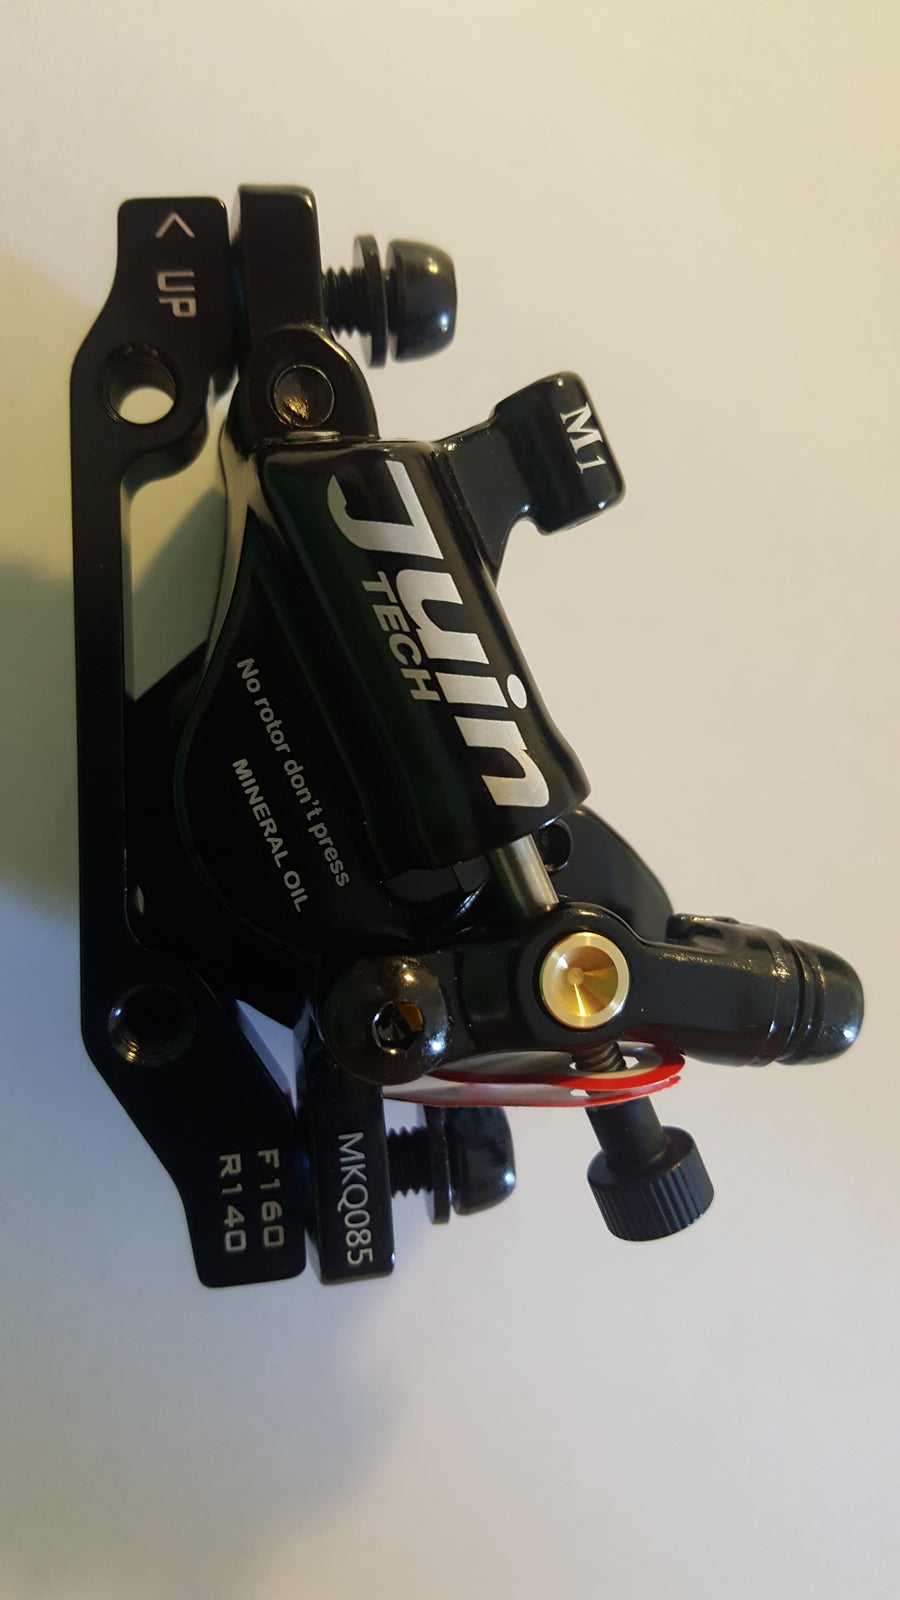 Juintech M1 hydraulic calipers! Front and Rear